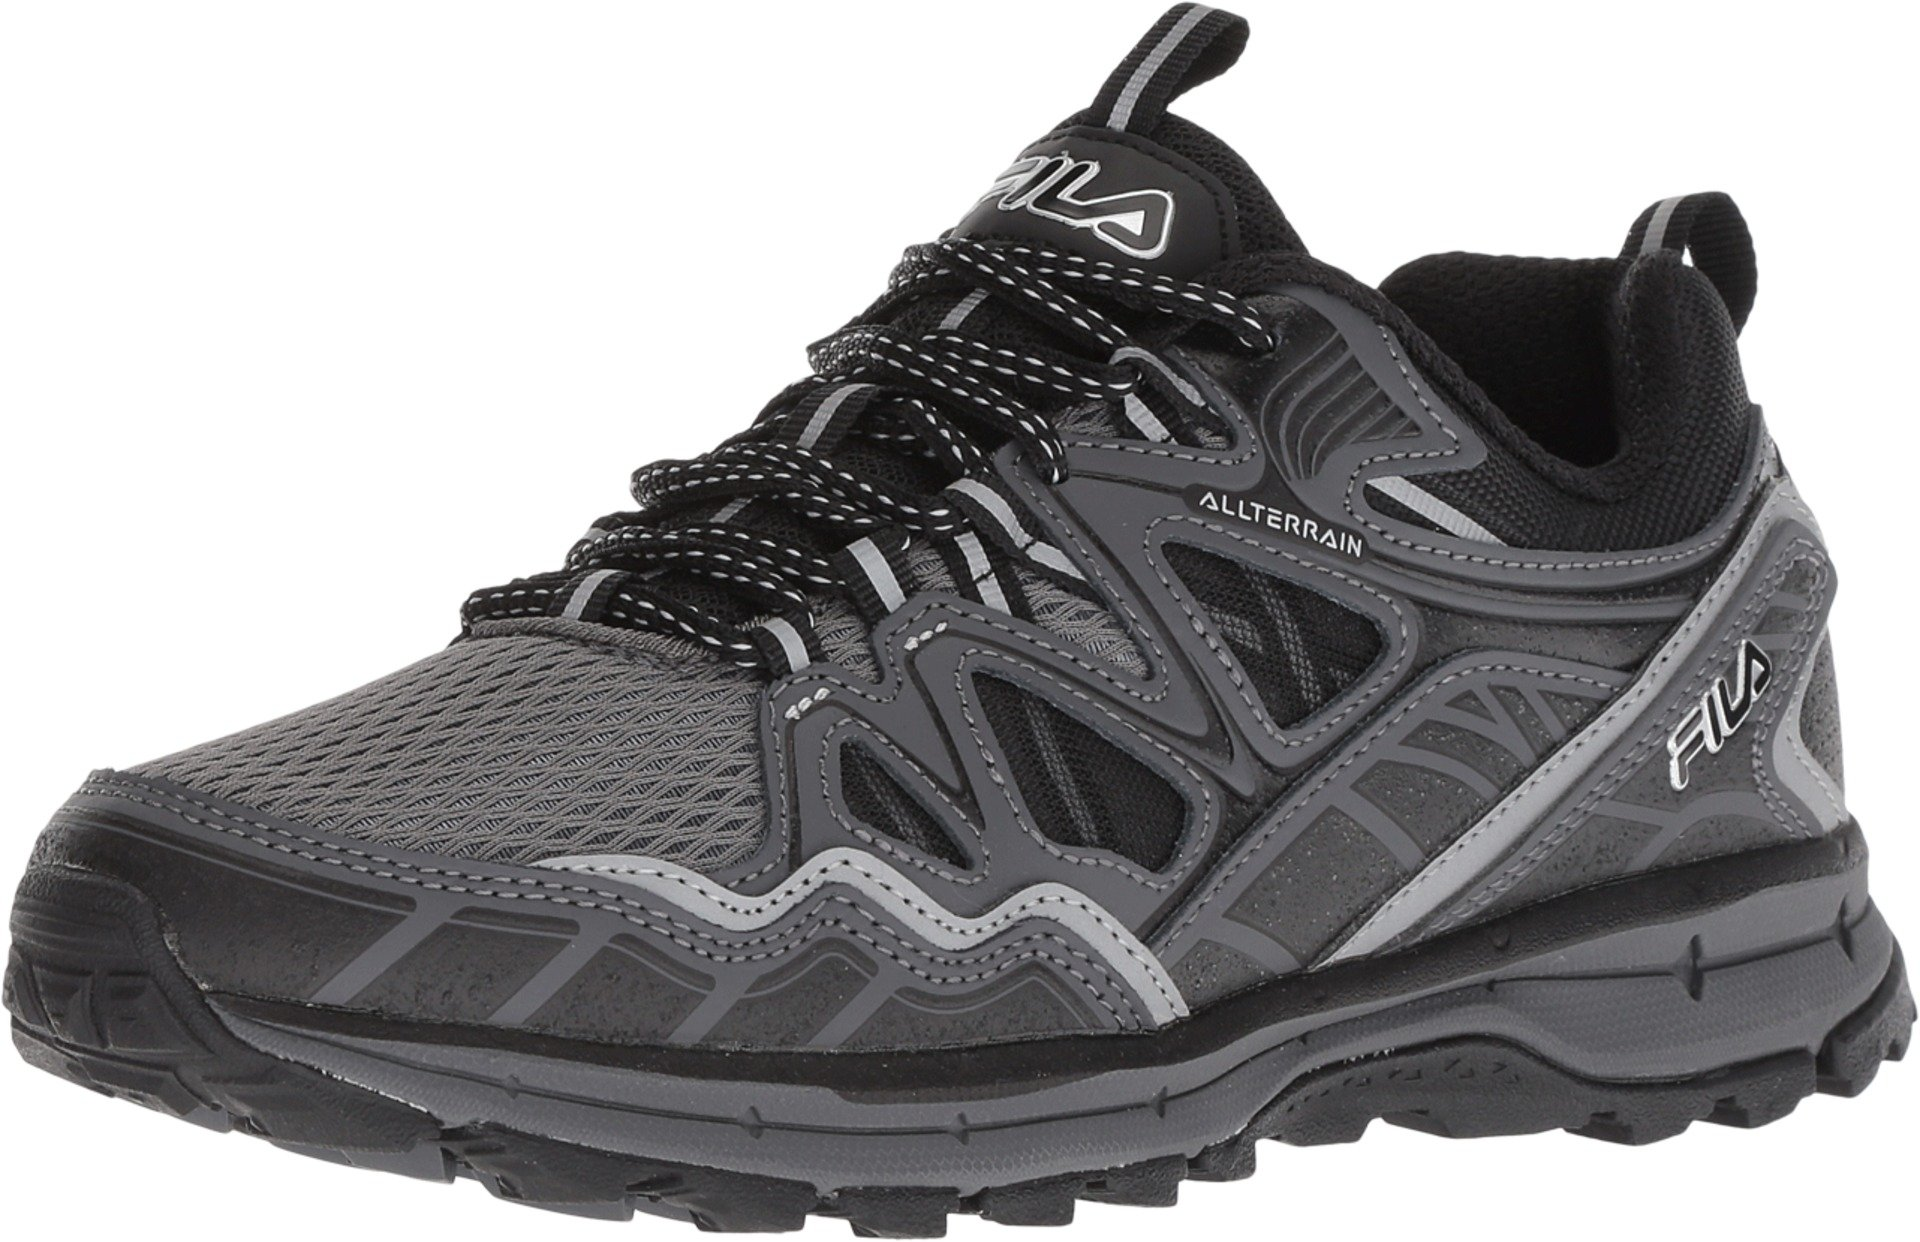 Fila Men's Memory TKO Tr 5.0 Trail Castlerock/Dark Shadow/Black 1 10.5 D US by Fila